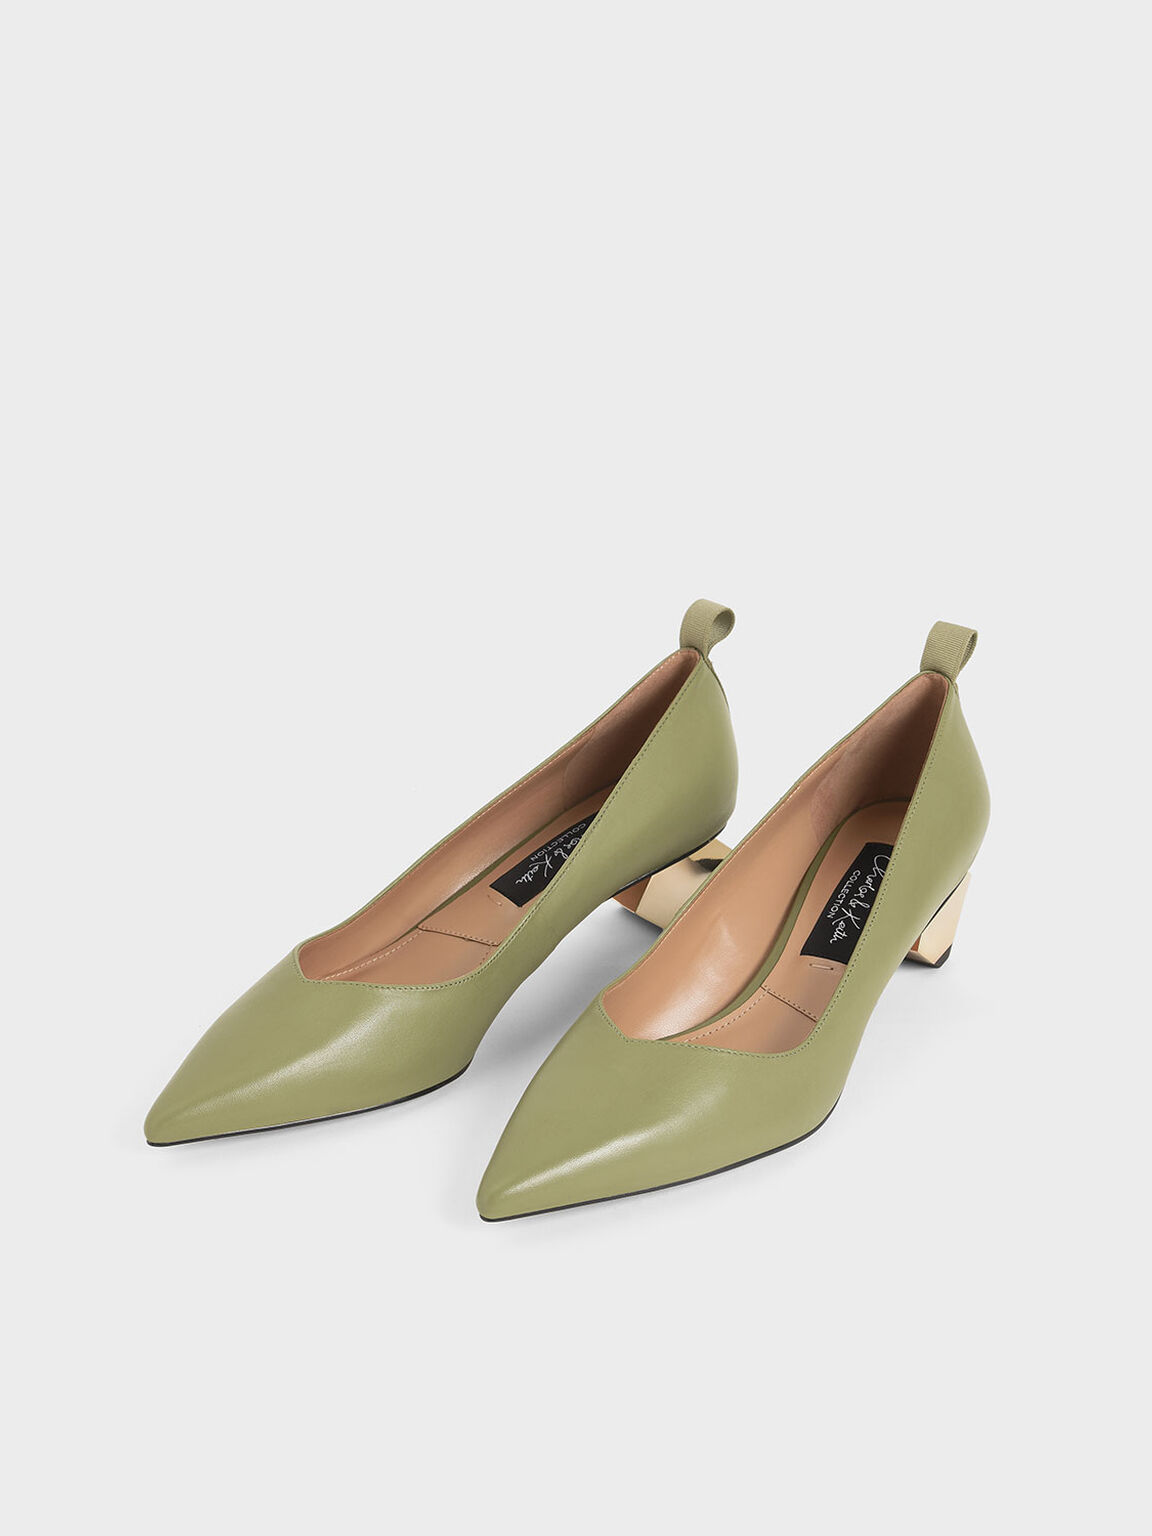 Leather Sculptural Heel Pumps, Sage Green, hi-res